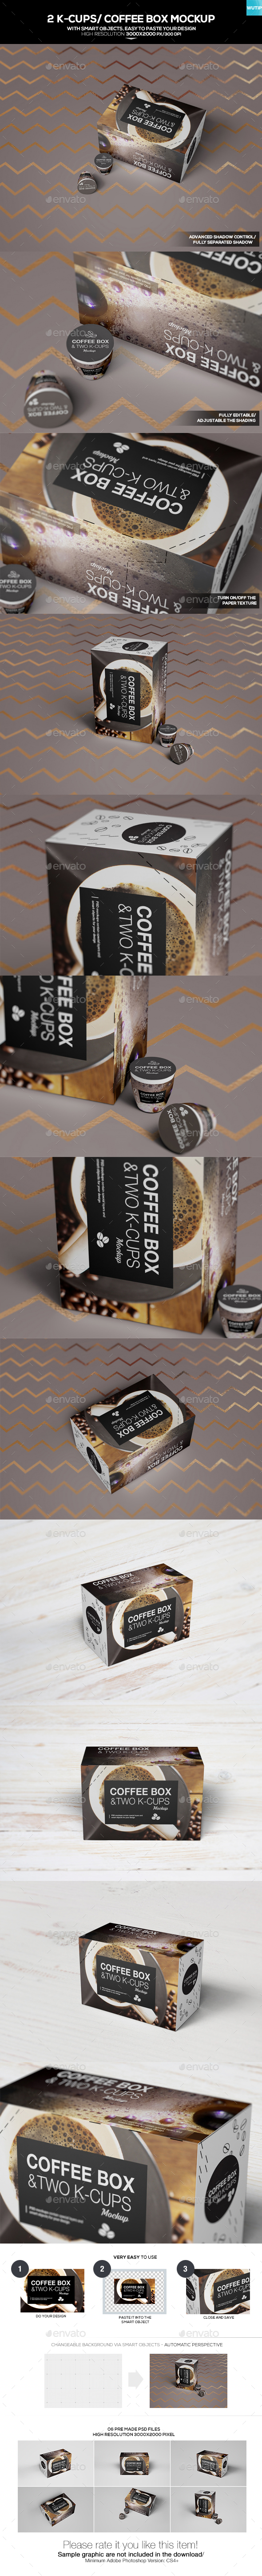 2 K-Cups/ Coffee Box Mockup - Food and Drink Packaging